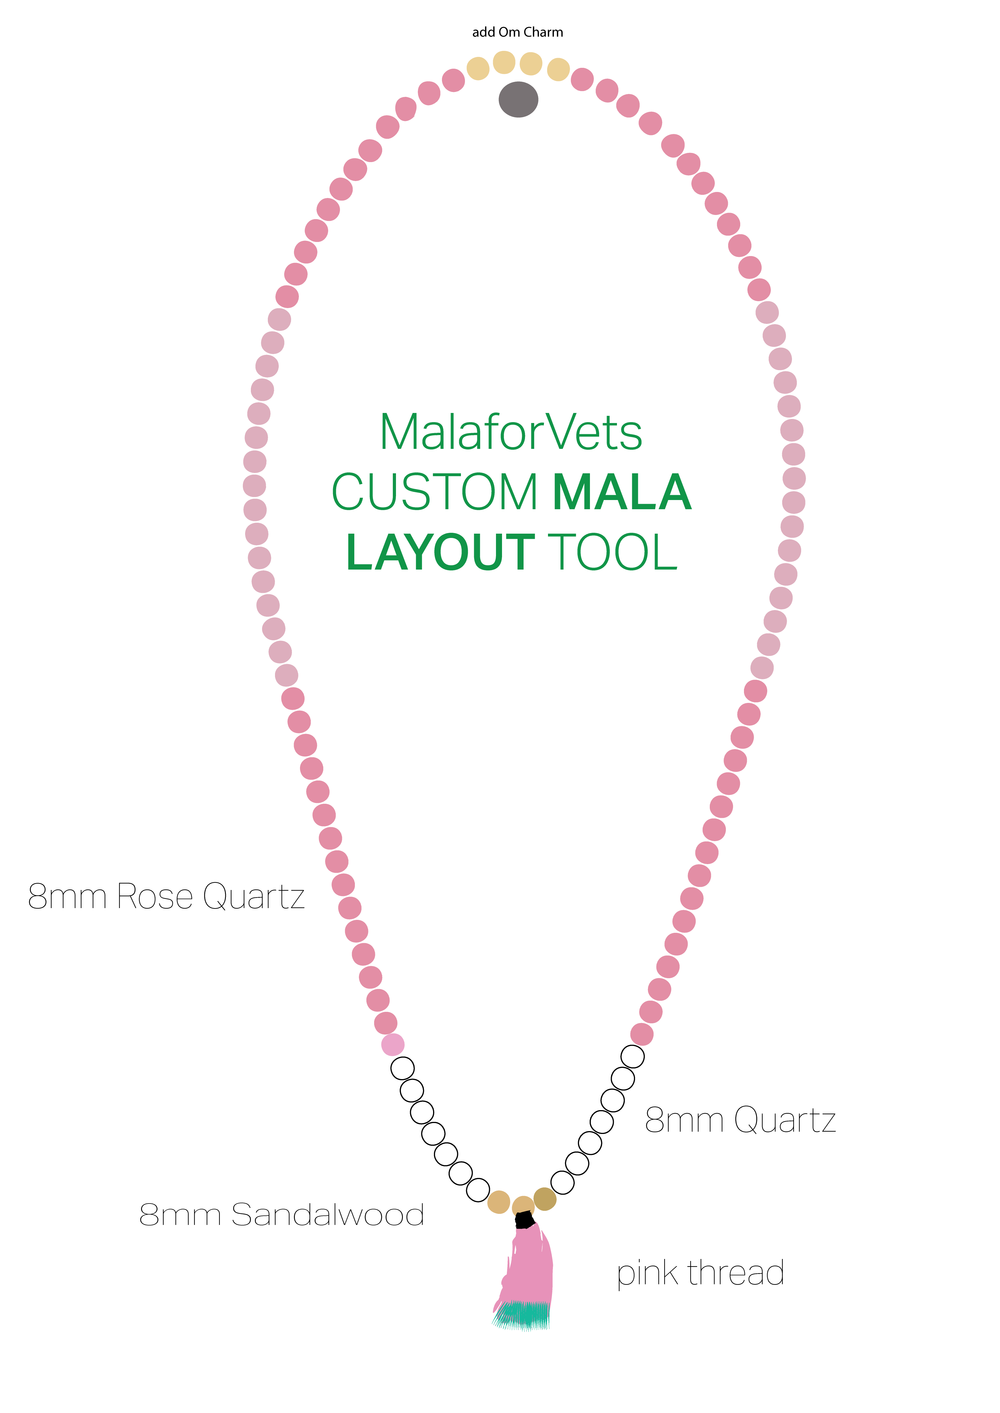 Any gemstone or bead listed in my Gemstone Meanings is available. I can make tassels, or use larger gemstones to finish off your mala bead. Download this image and customize it. Email me for more information: malaforvets@gmail.com